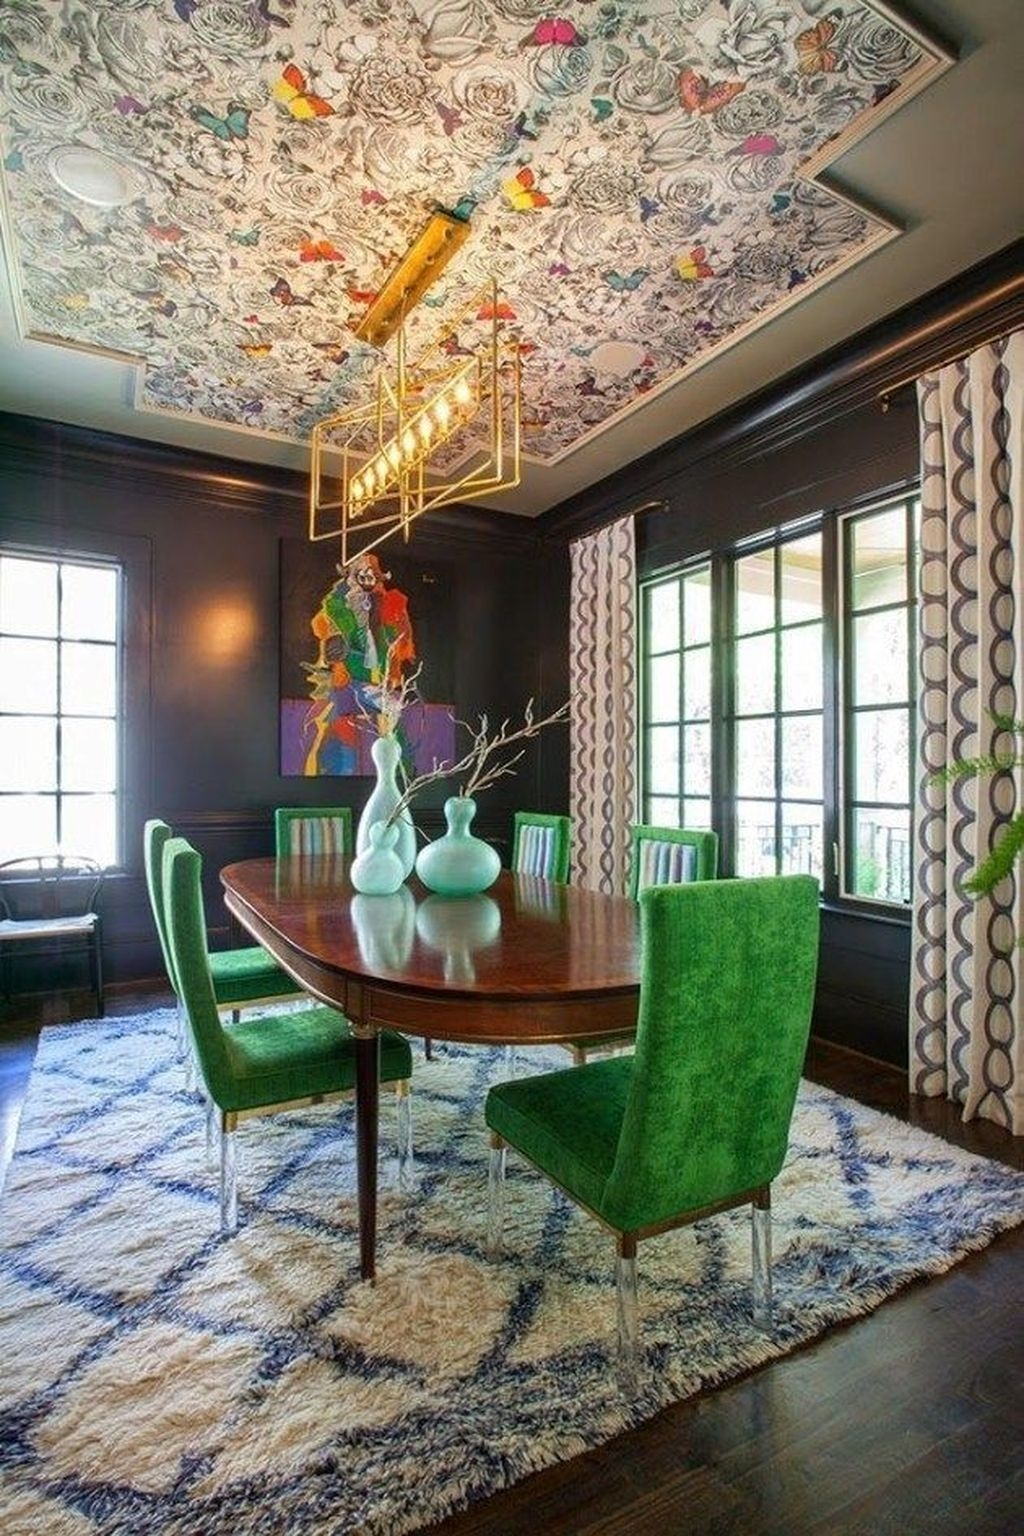 Unordinary Dining Room Design Ideas With Bohemian Style11